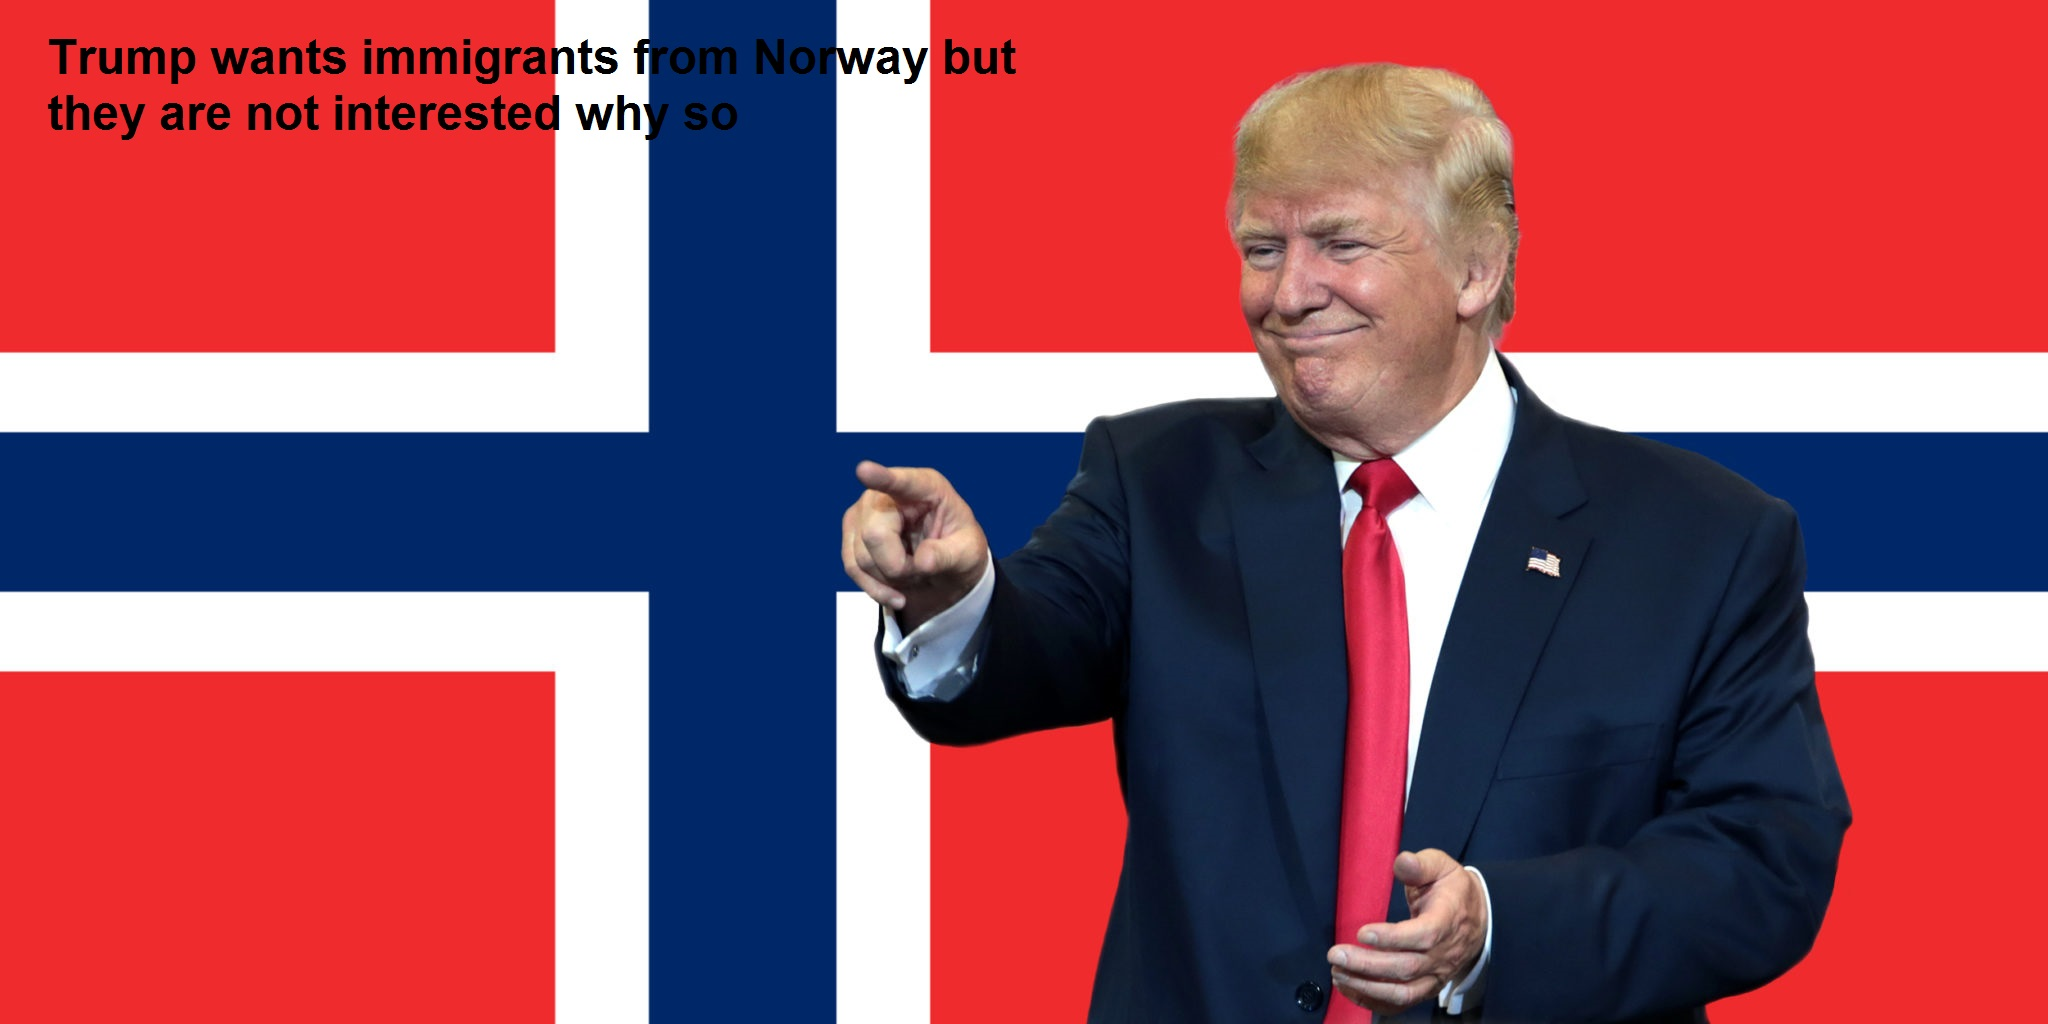 Trump wants immigrants from Norway but they are not interested why so?